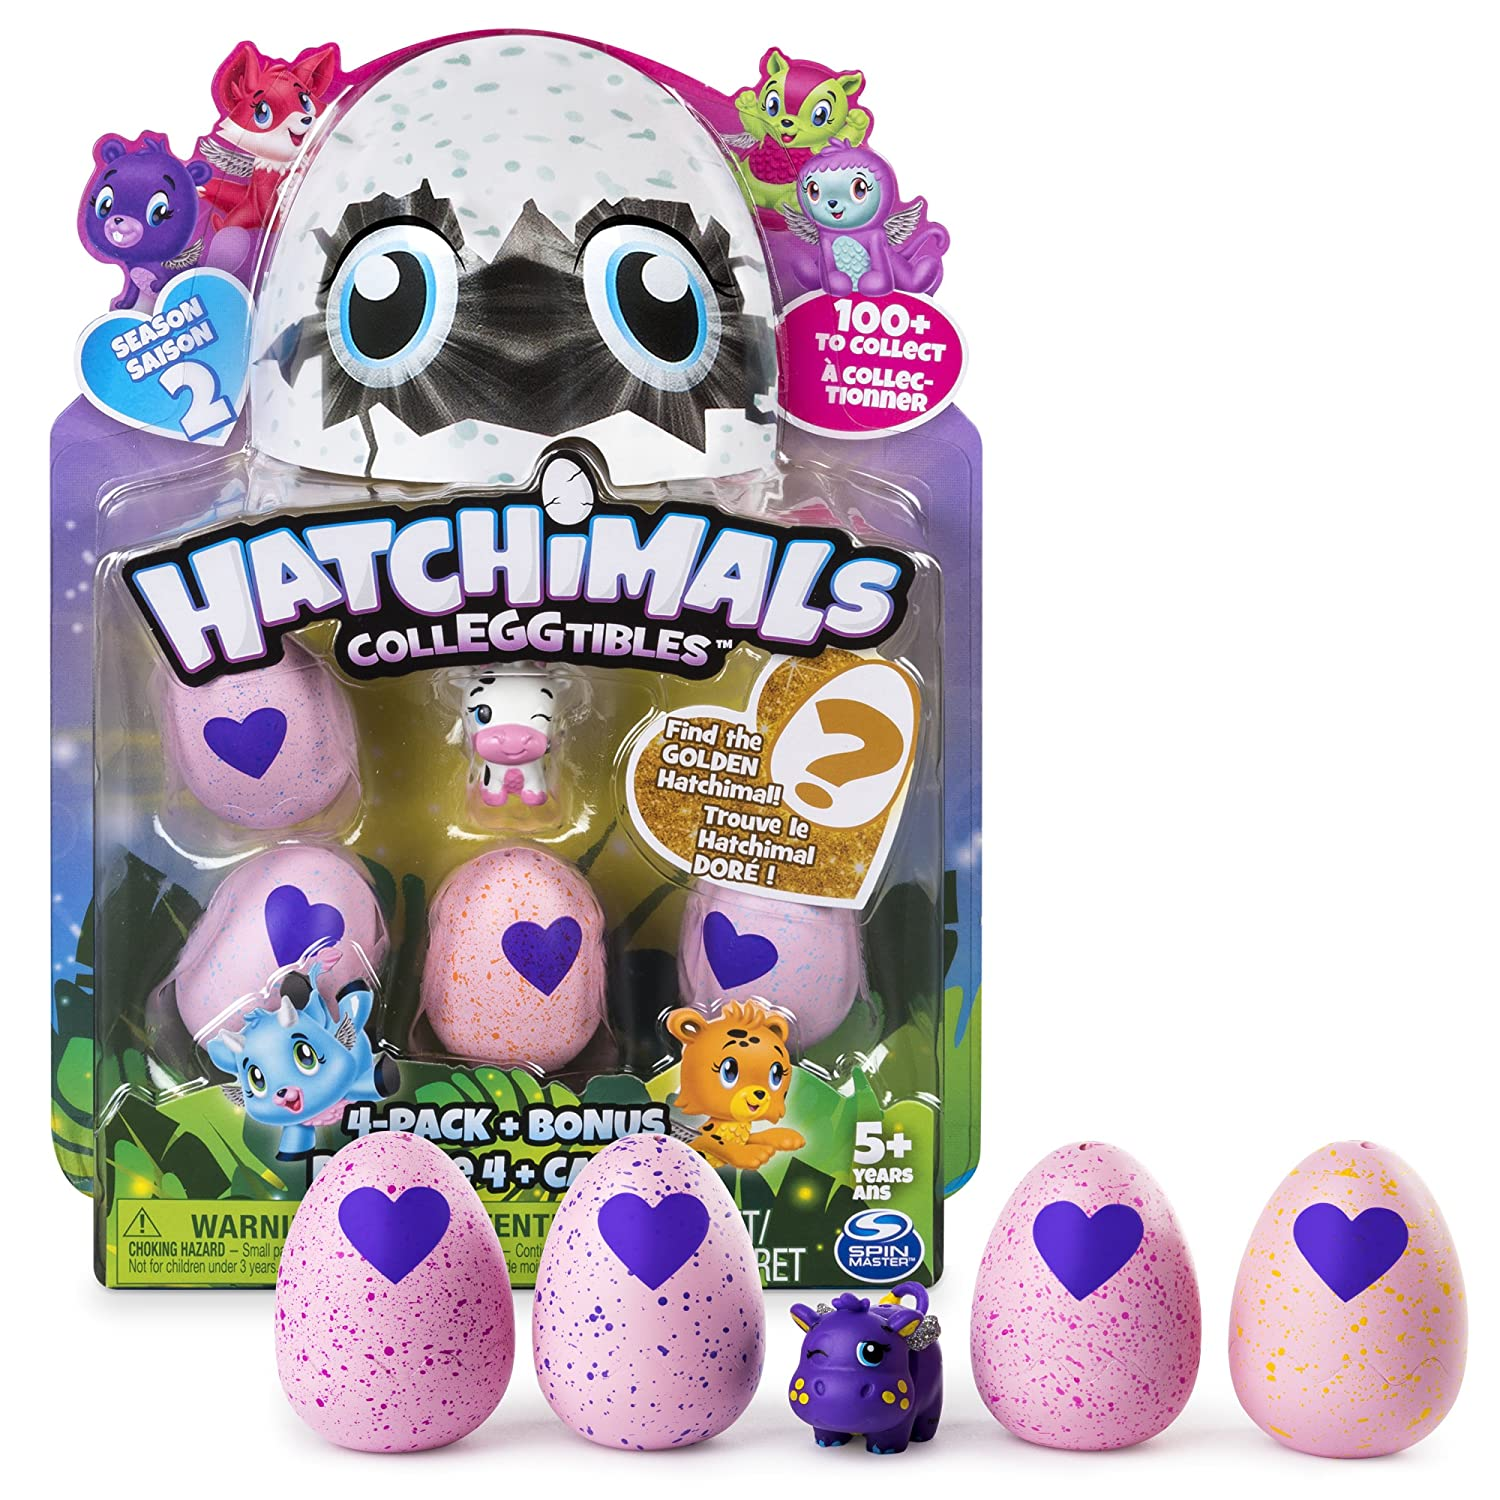 Hatchimals CollEGGtibles 5pack...